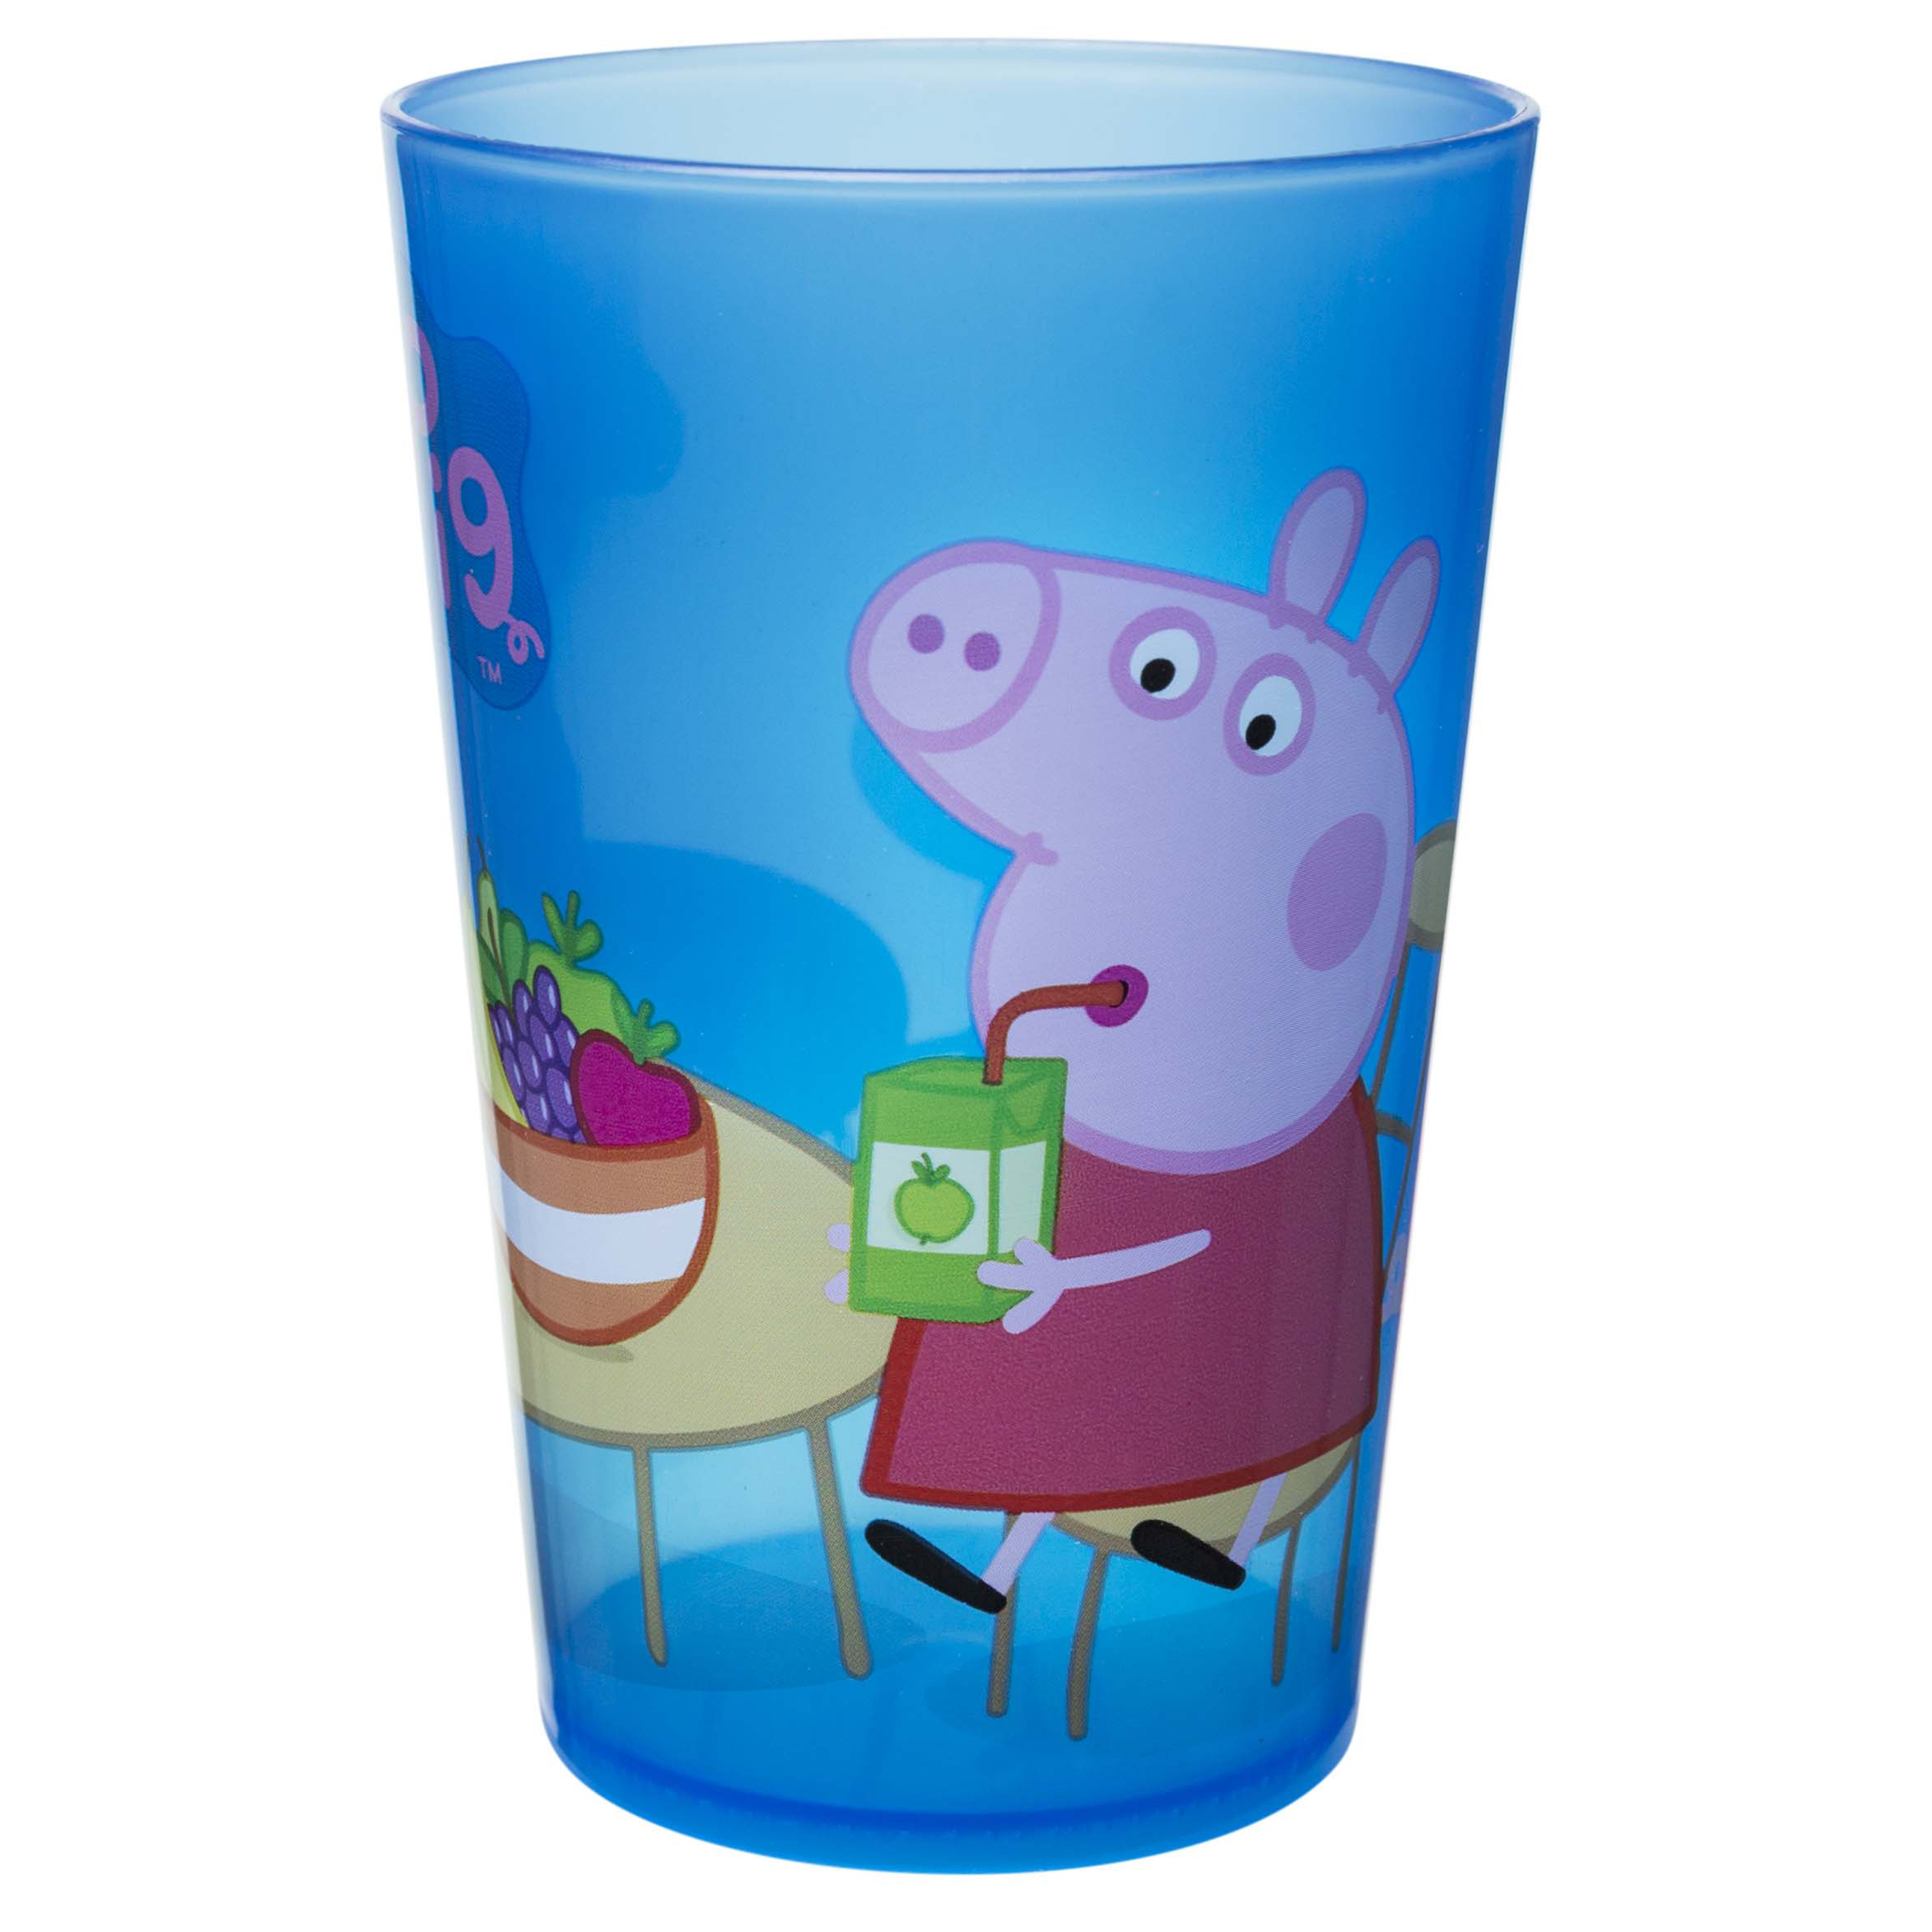 Peppa Pig Kid's Dinnerware Set, Peppa & Friends, 3-piece set